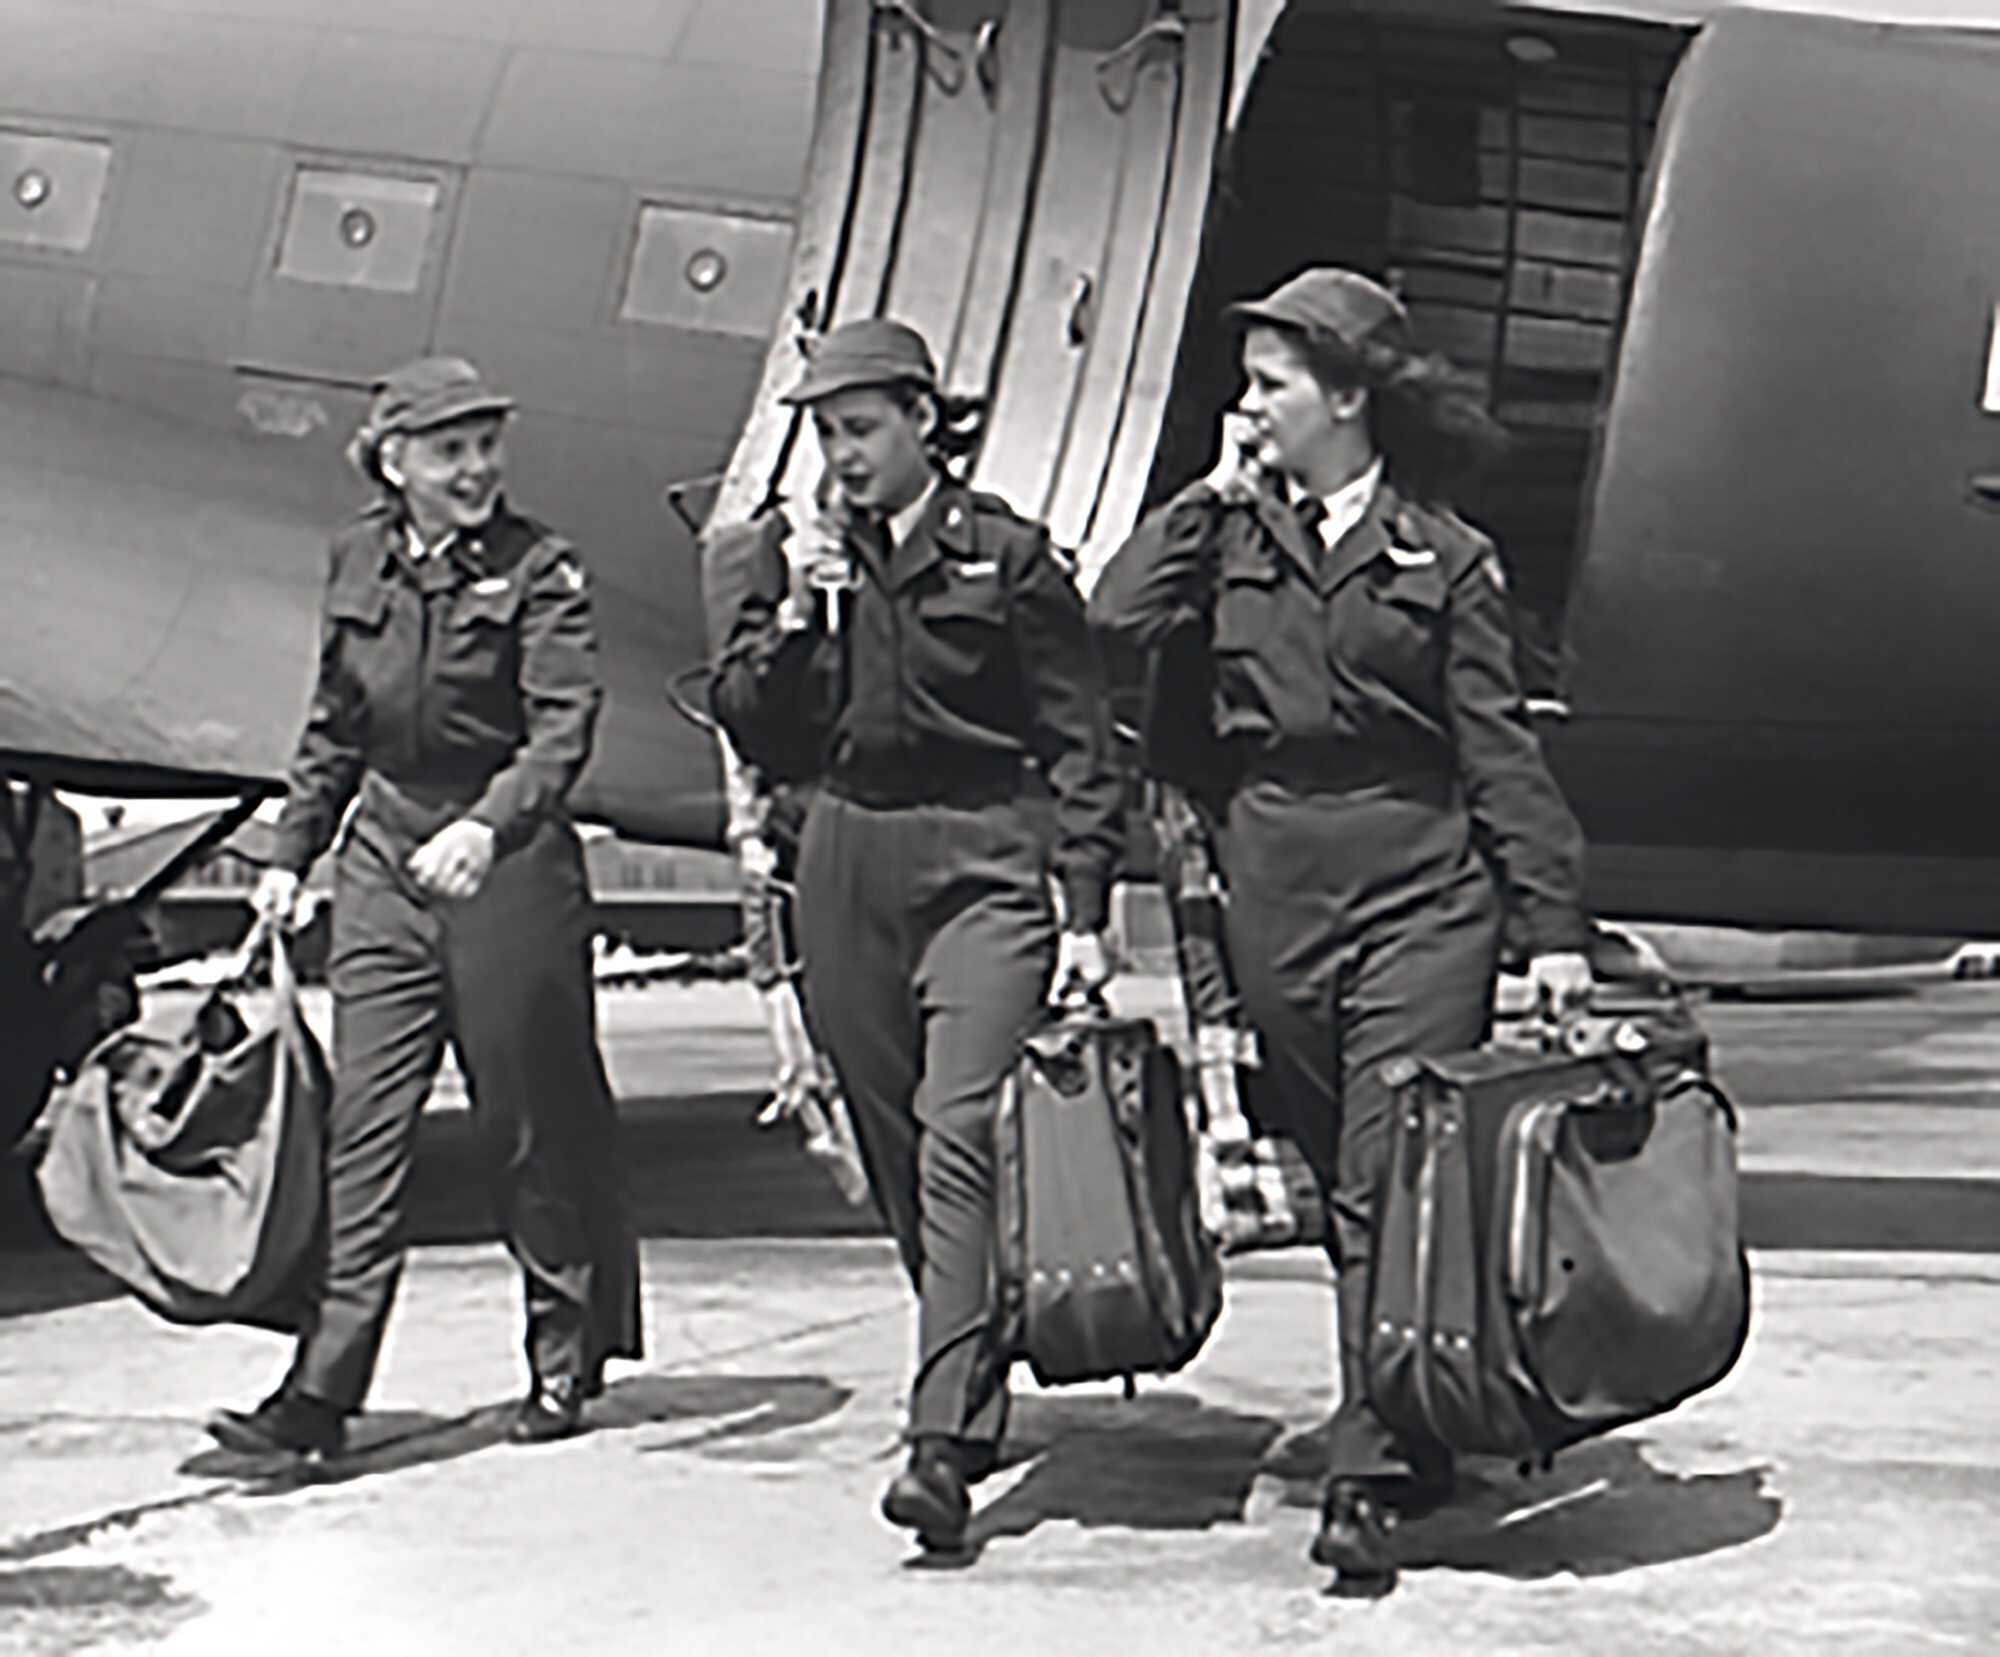 flygirls_establishment-wasps-dec-20-1944.jpg